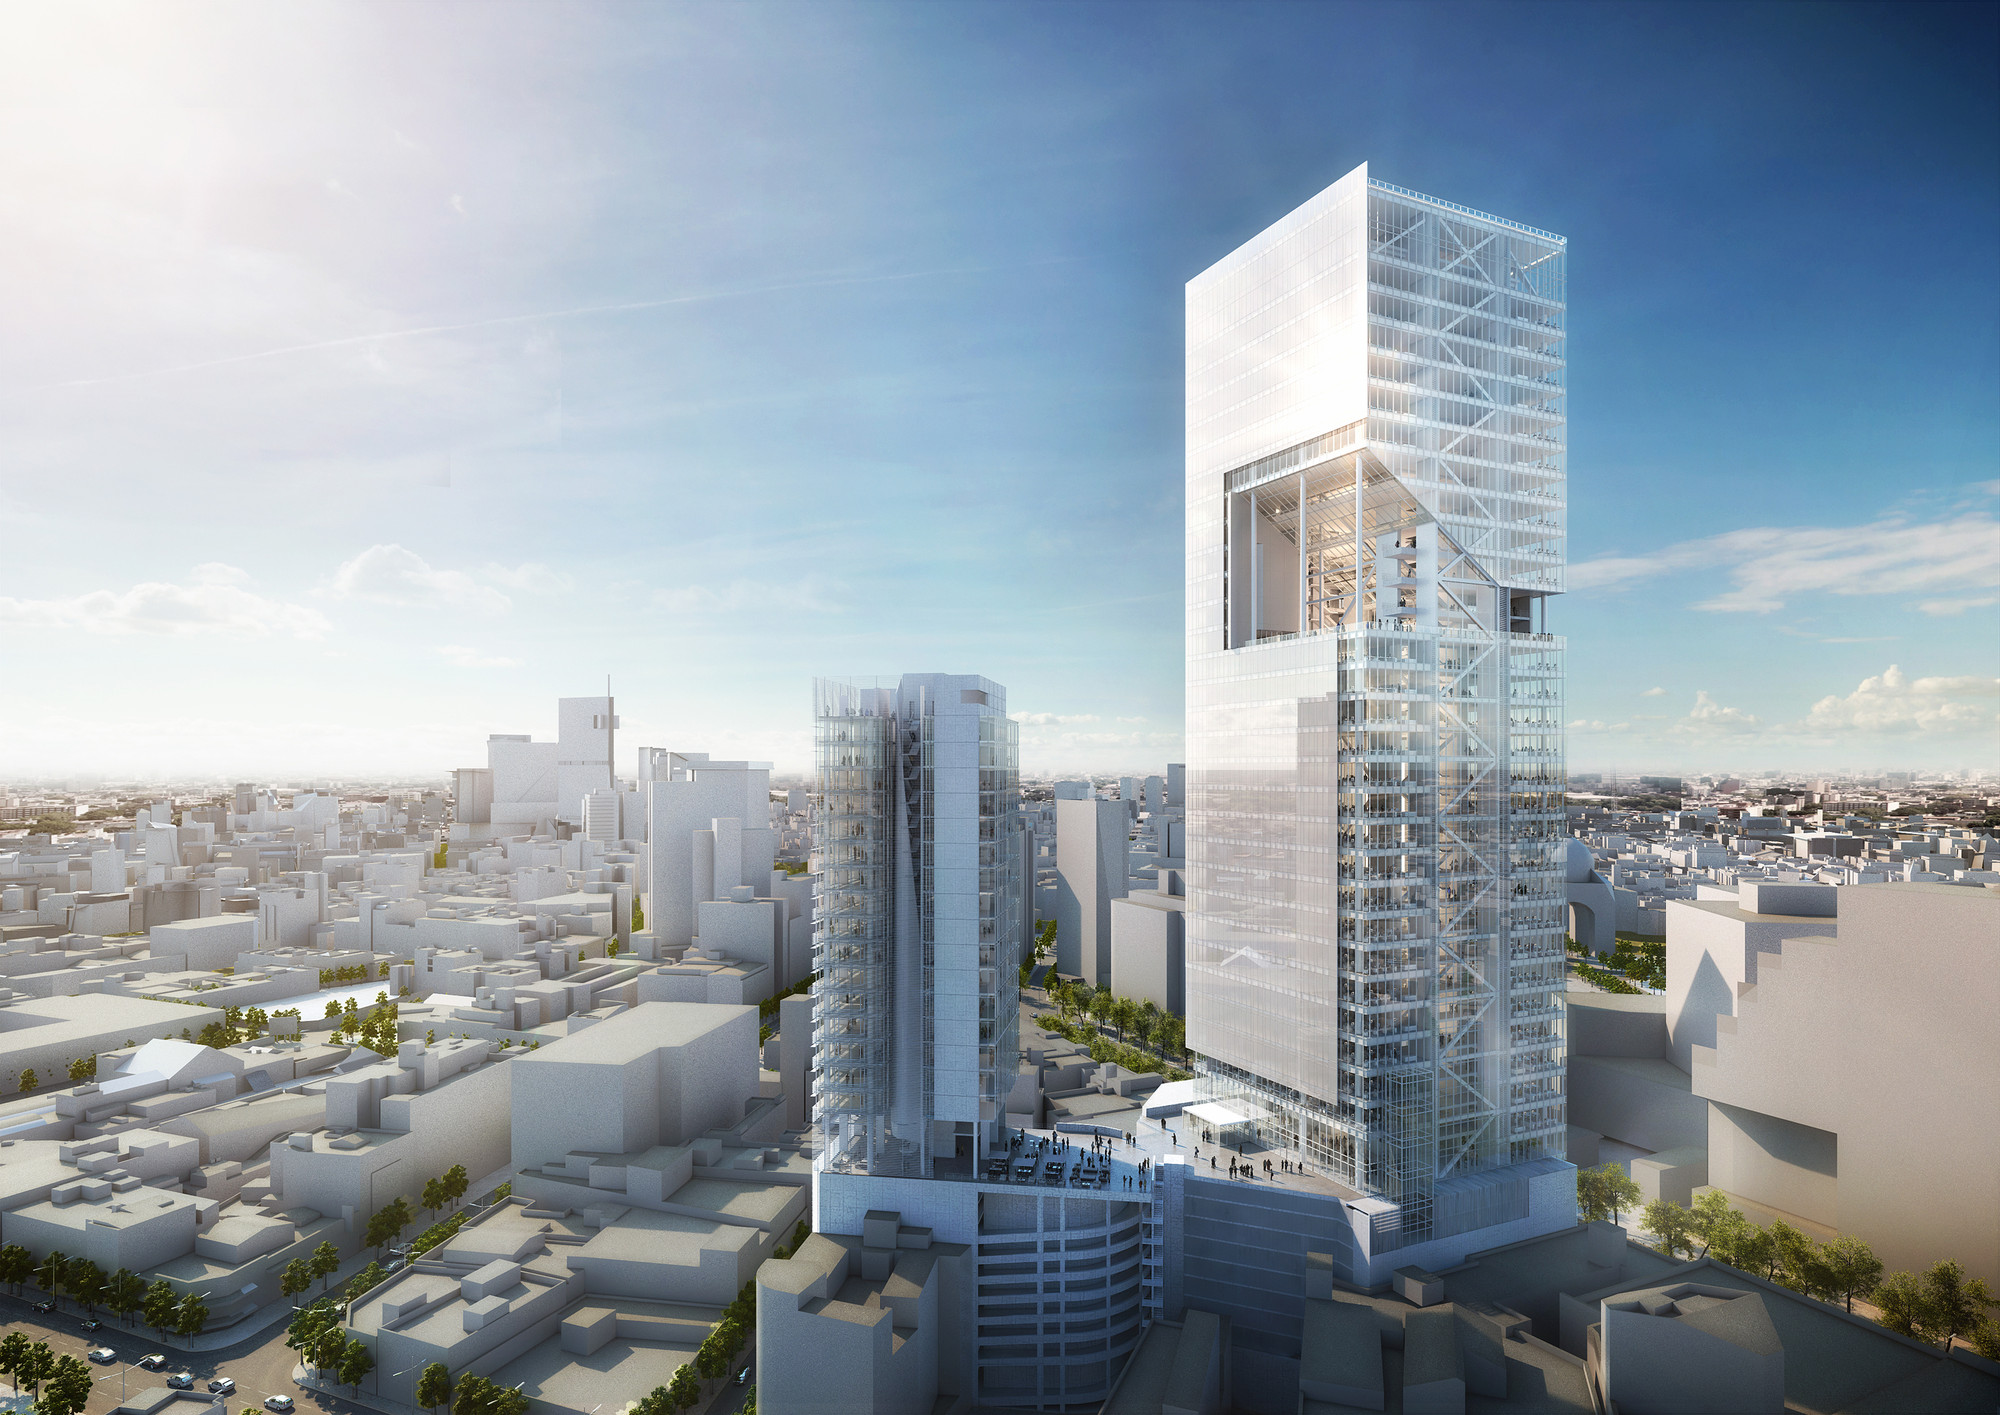 México: Richard Meier & Partners Architects, LLP + Diametro Arquitectos diseñan Torres Reforma, Cortesia de Richard Meier & Partners Architects LLP